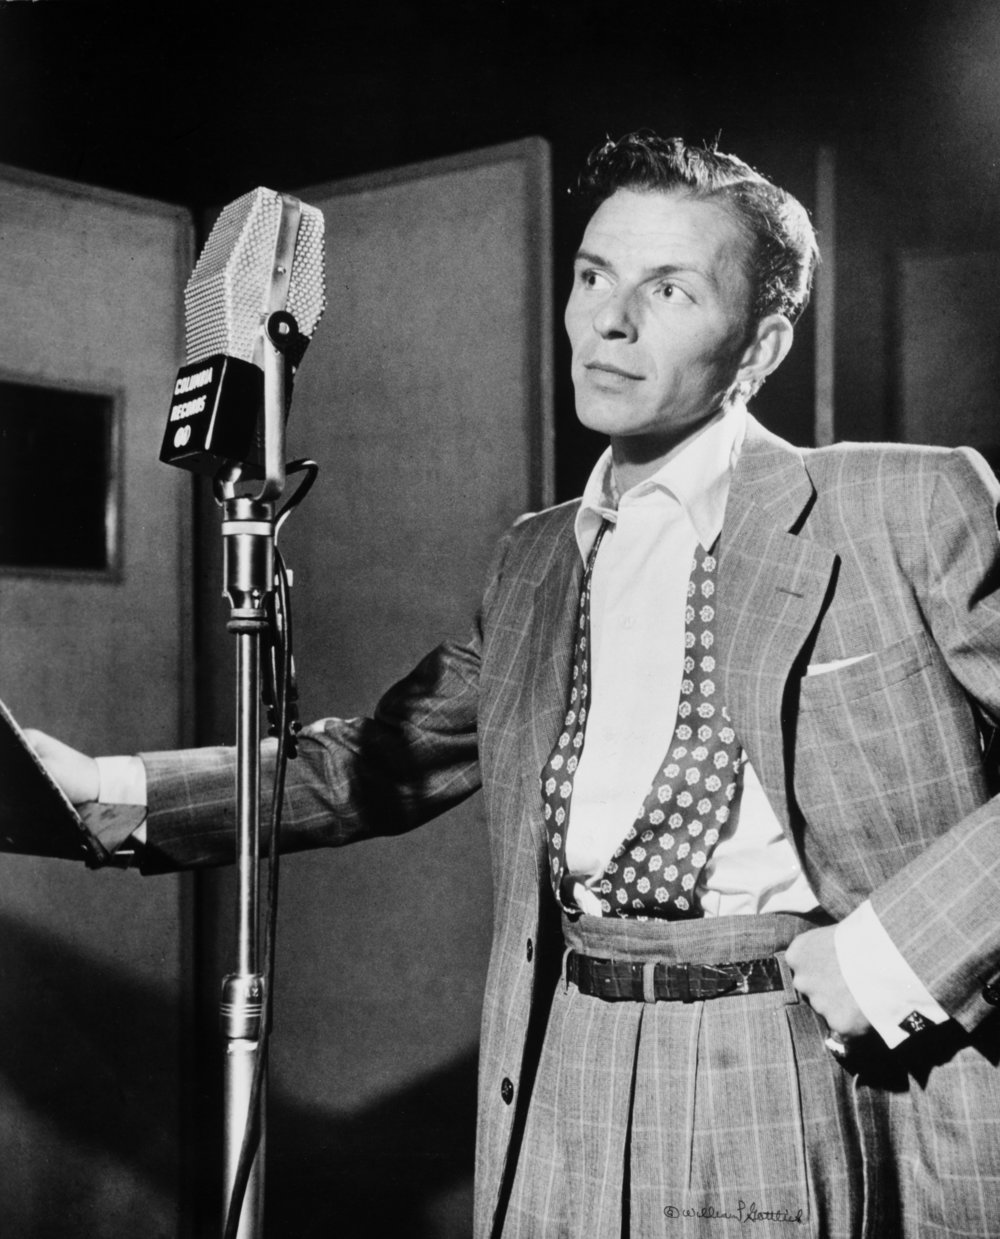 FRANK SINATRA - Ava and Frank shared a tumultuous lifetime of lover's ups and downs. But even at their worst, she was passionate about his music, and never got bored of hearing him sing (who can blame her). He frequently sang to her over the phone even after they divorced.